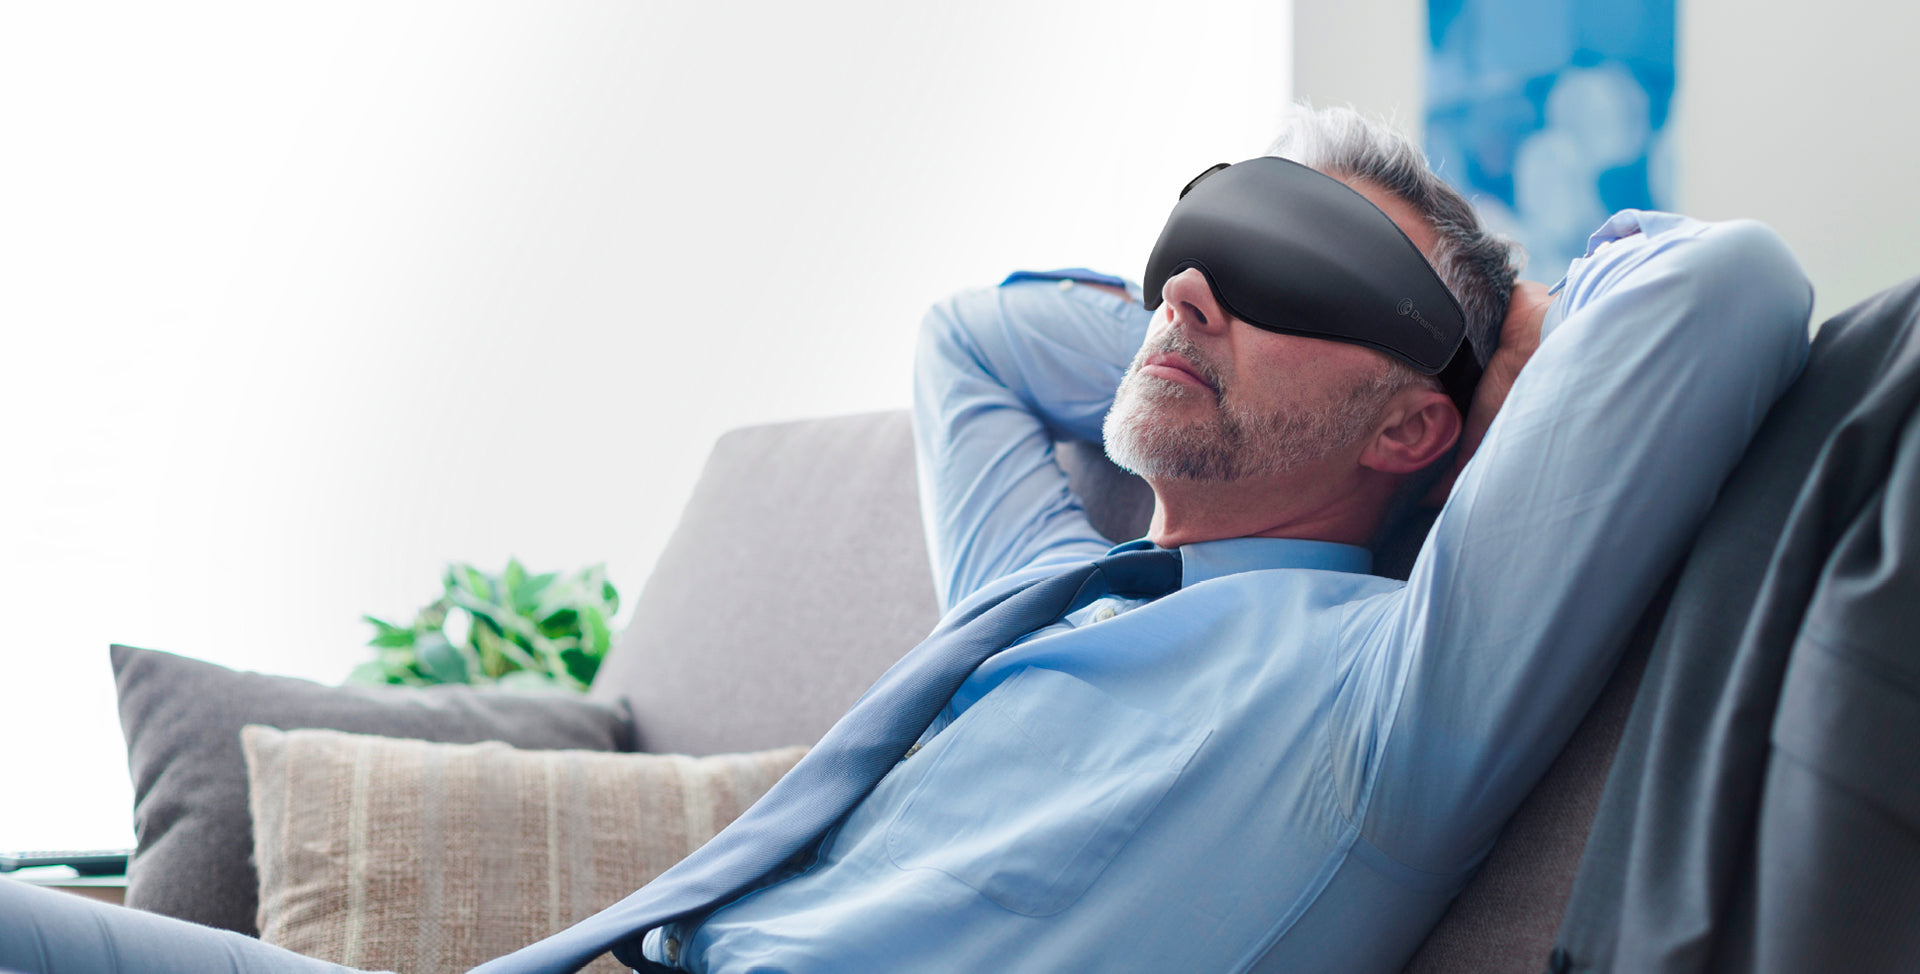 Power Napping restore alertness, improve performance, reduce mistakes and accidents.